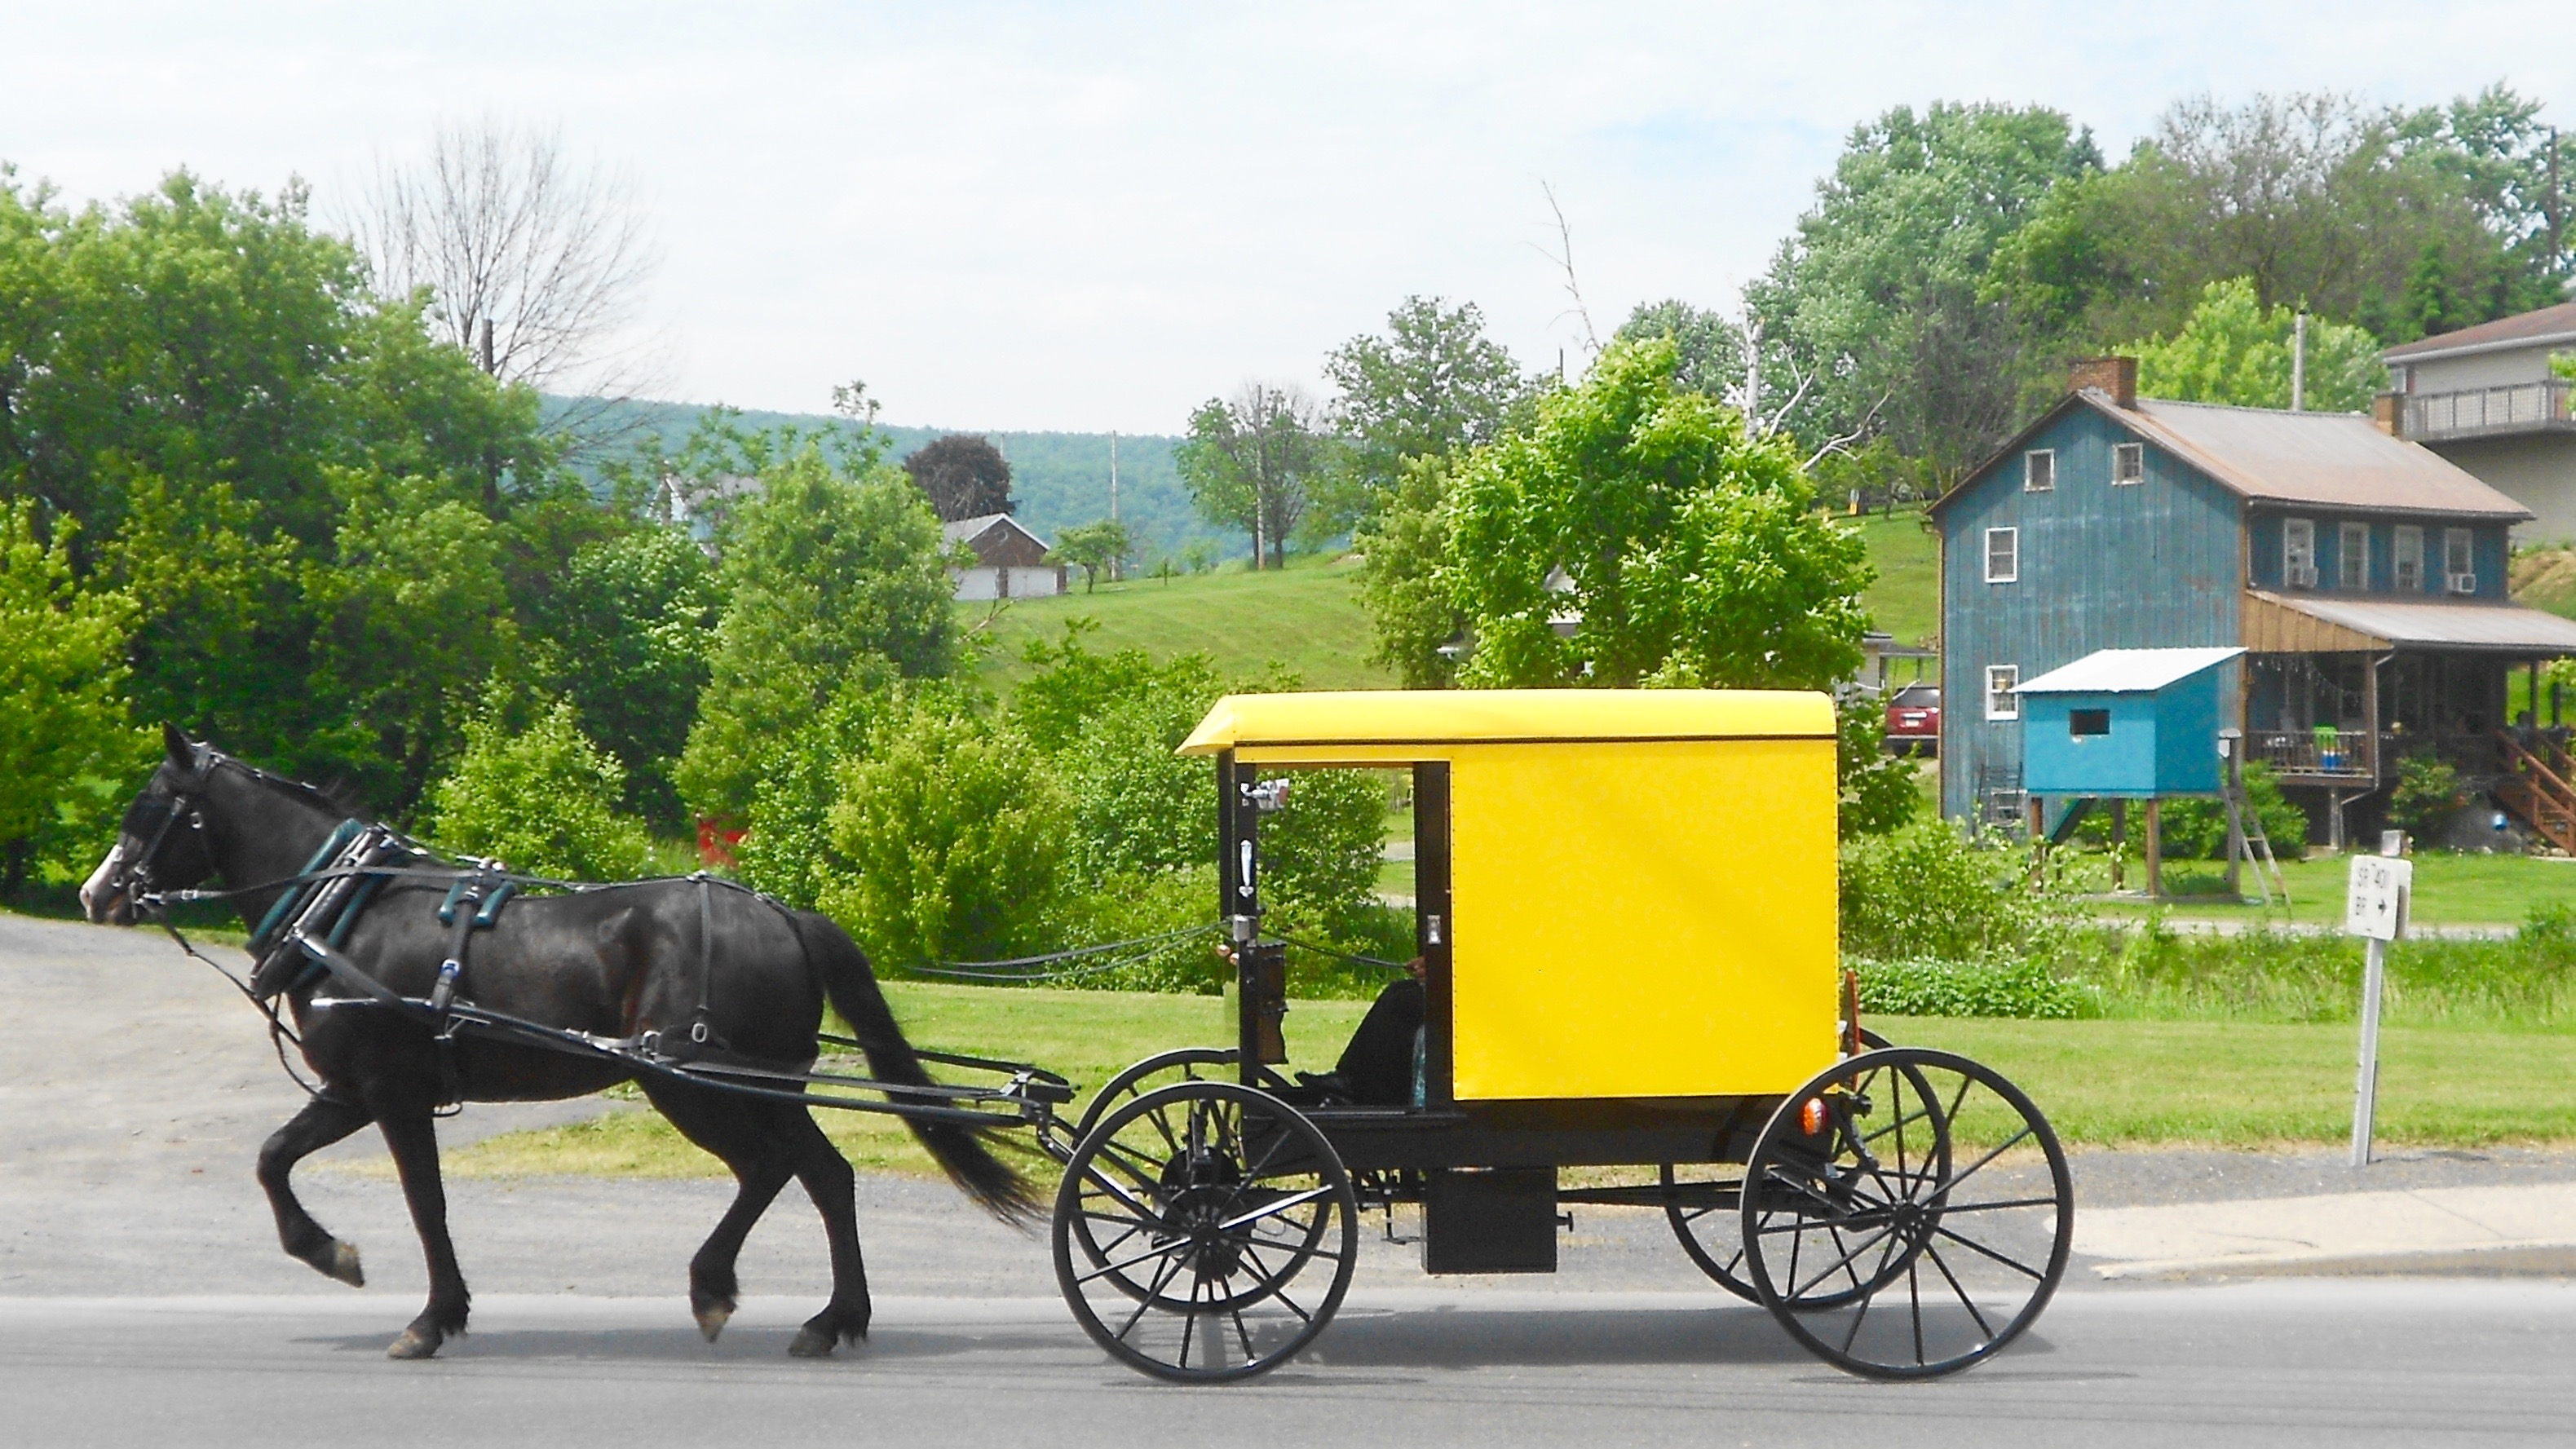 Byler Amish - Wikipedia